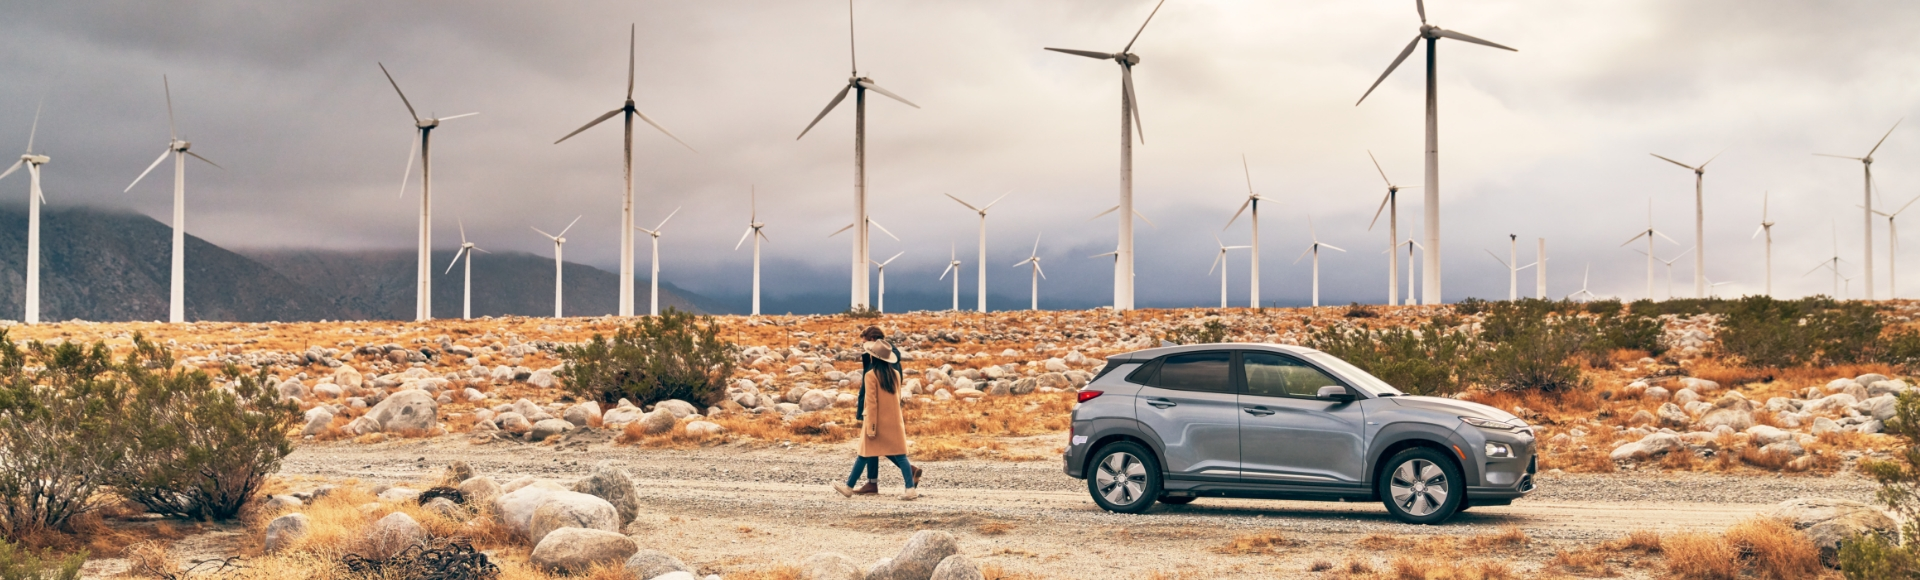 Kona electric and windmills